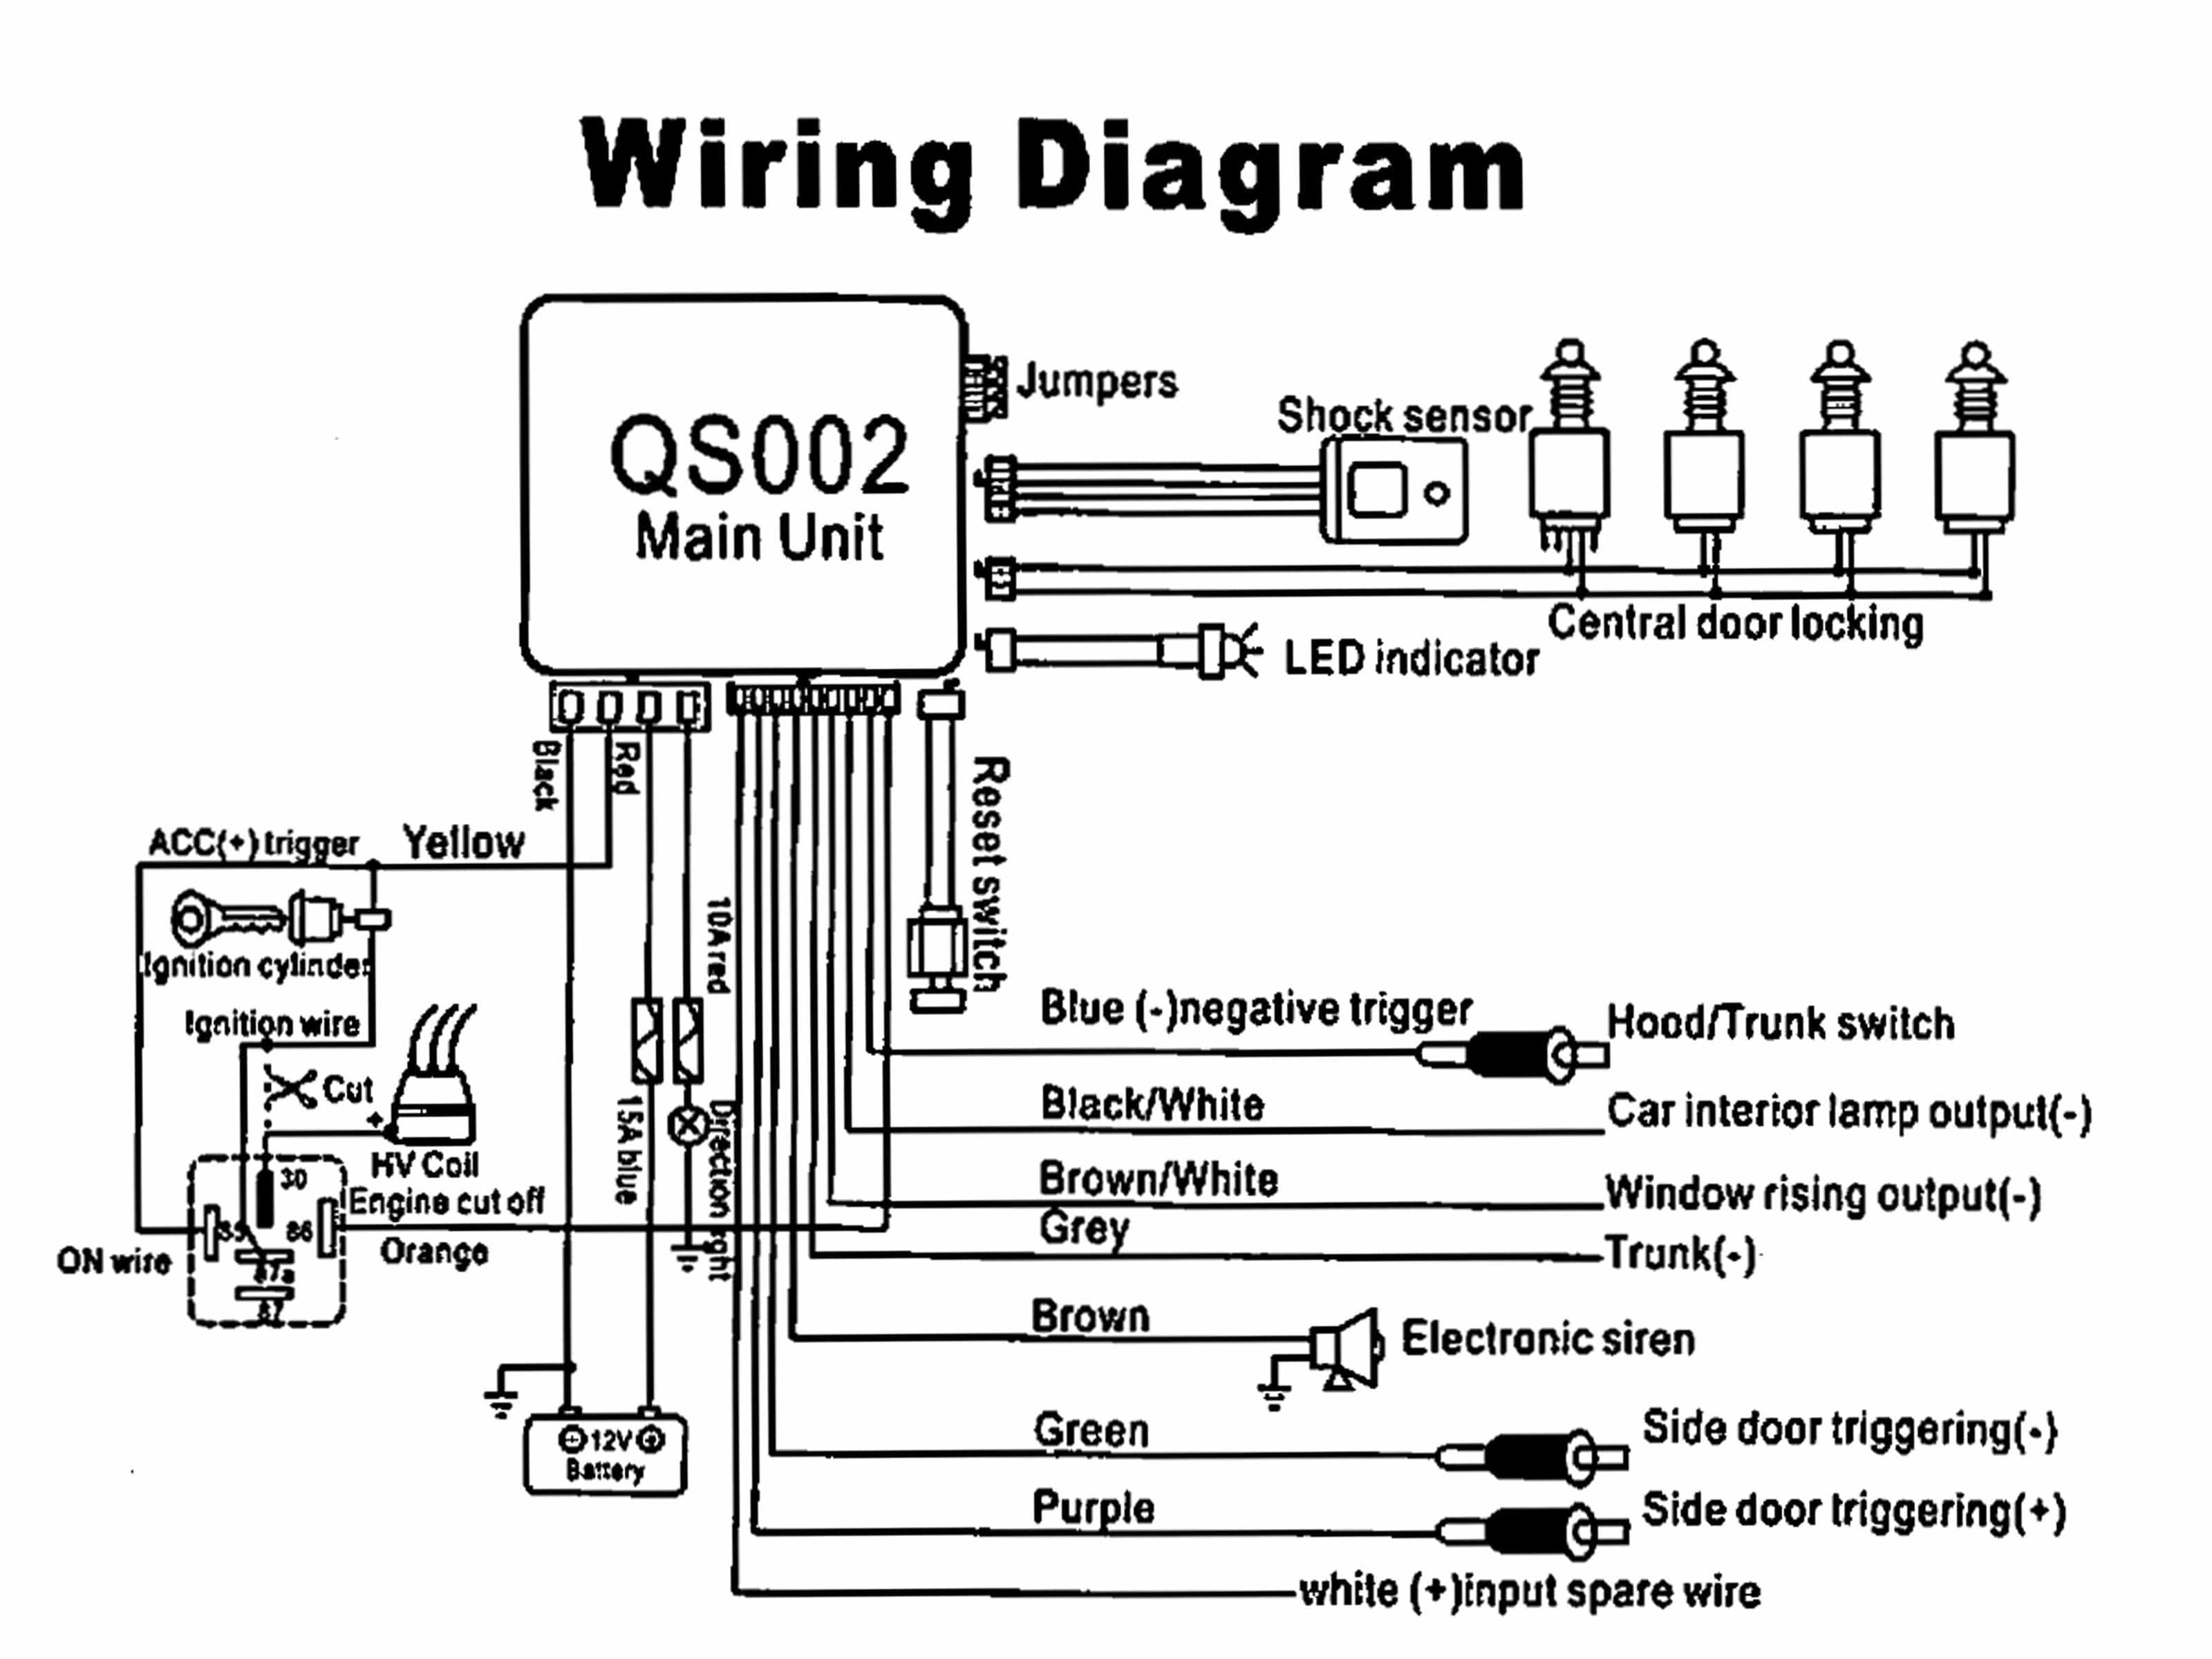 hornblasters wiring diagram   27 wiring diagram images